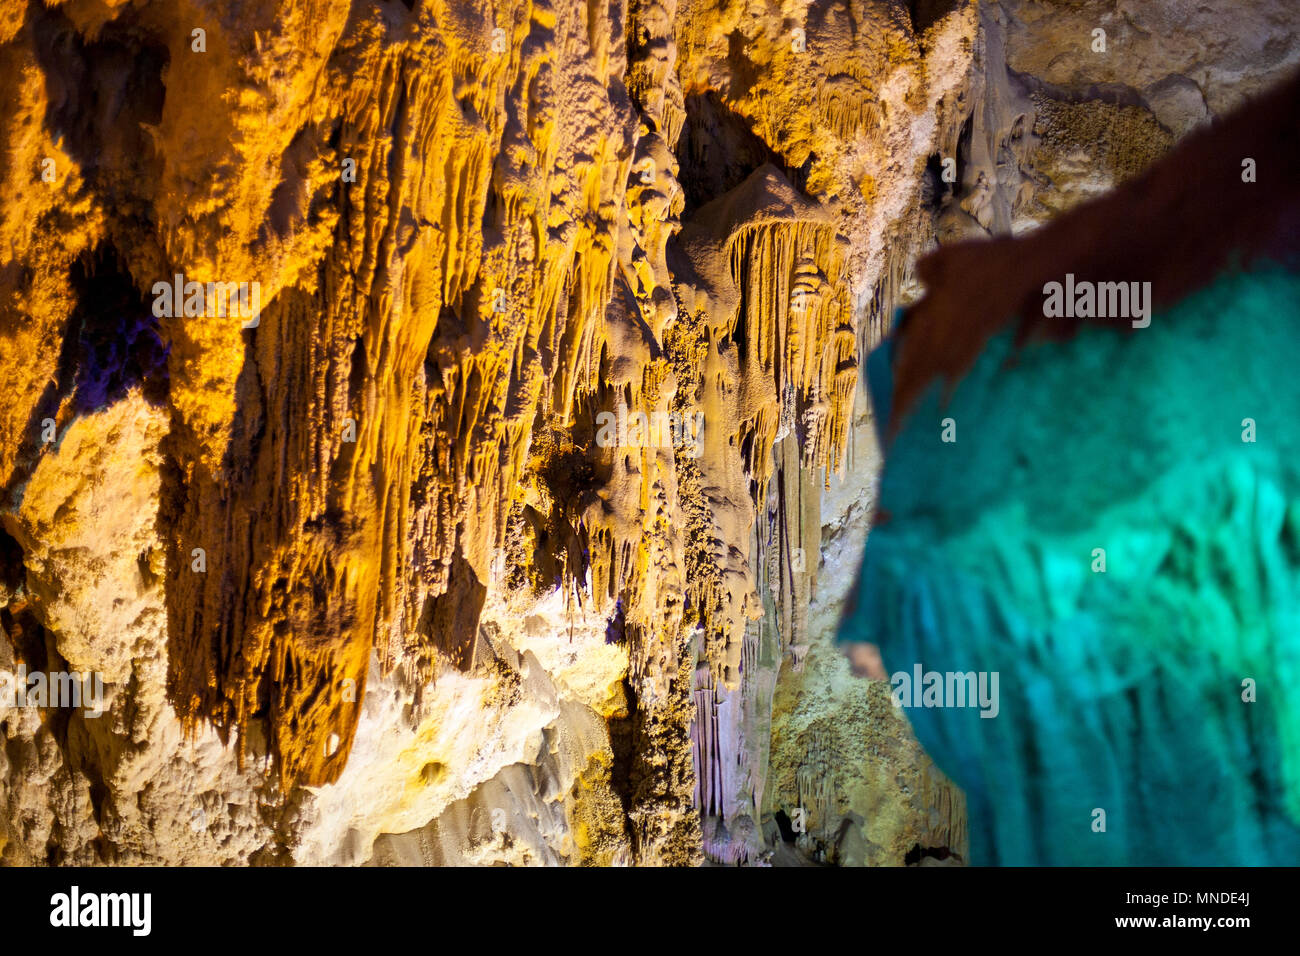 beautiful formation of rock geology inside a spanish cave - Stock Image